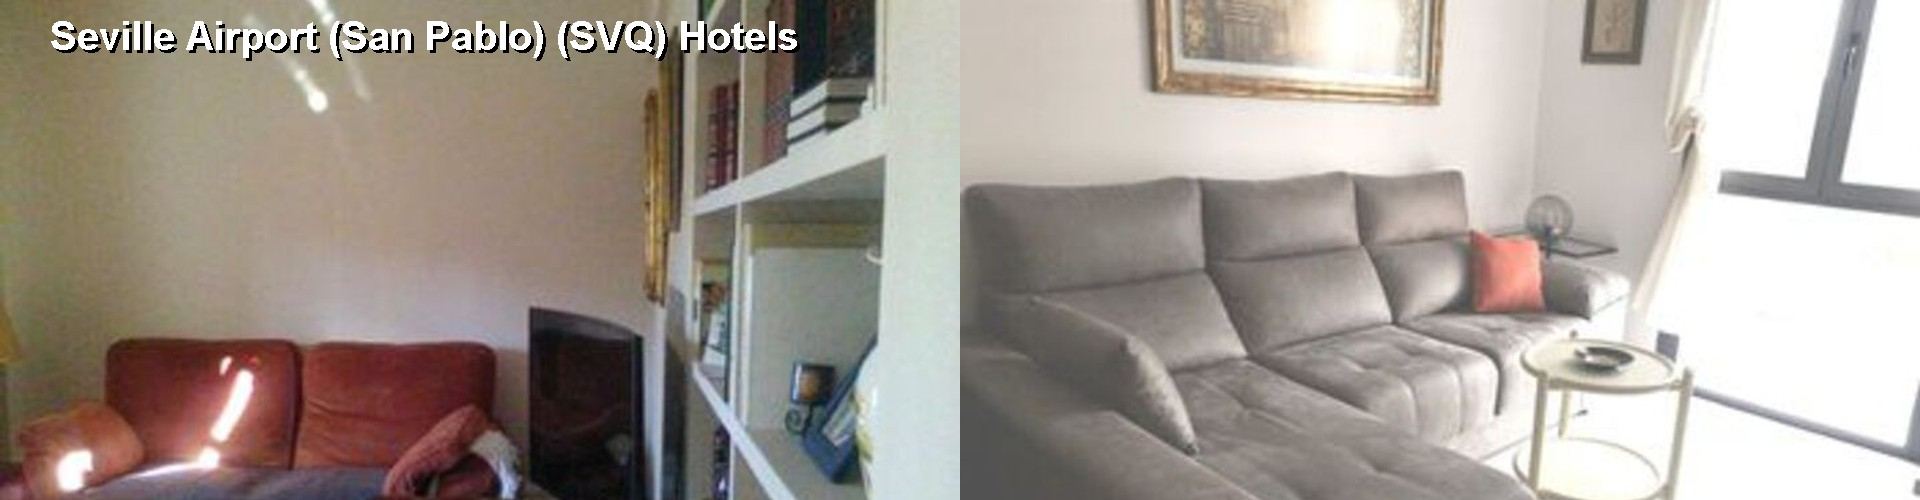 5 Best Hotels near Seville Airport (San Pablo) (SVQ)